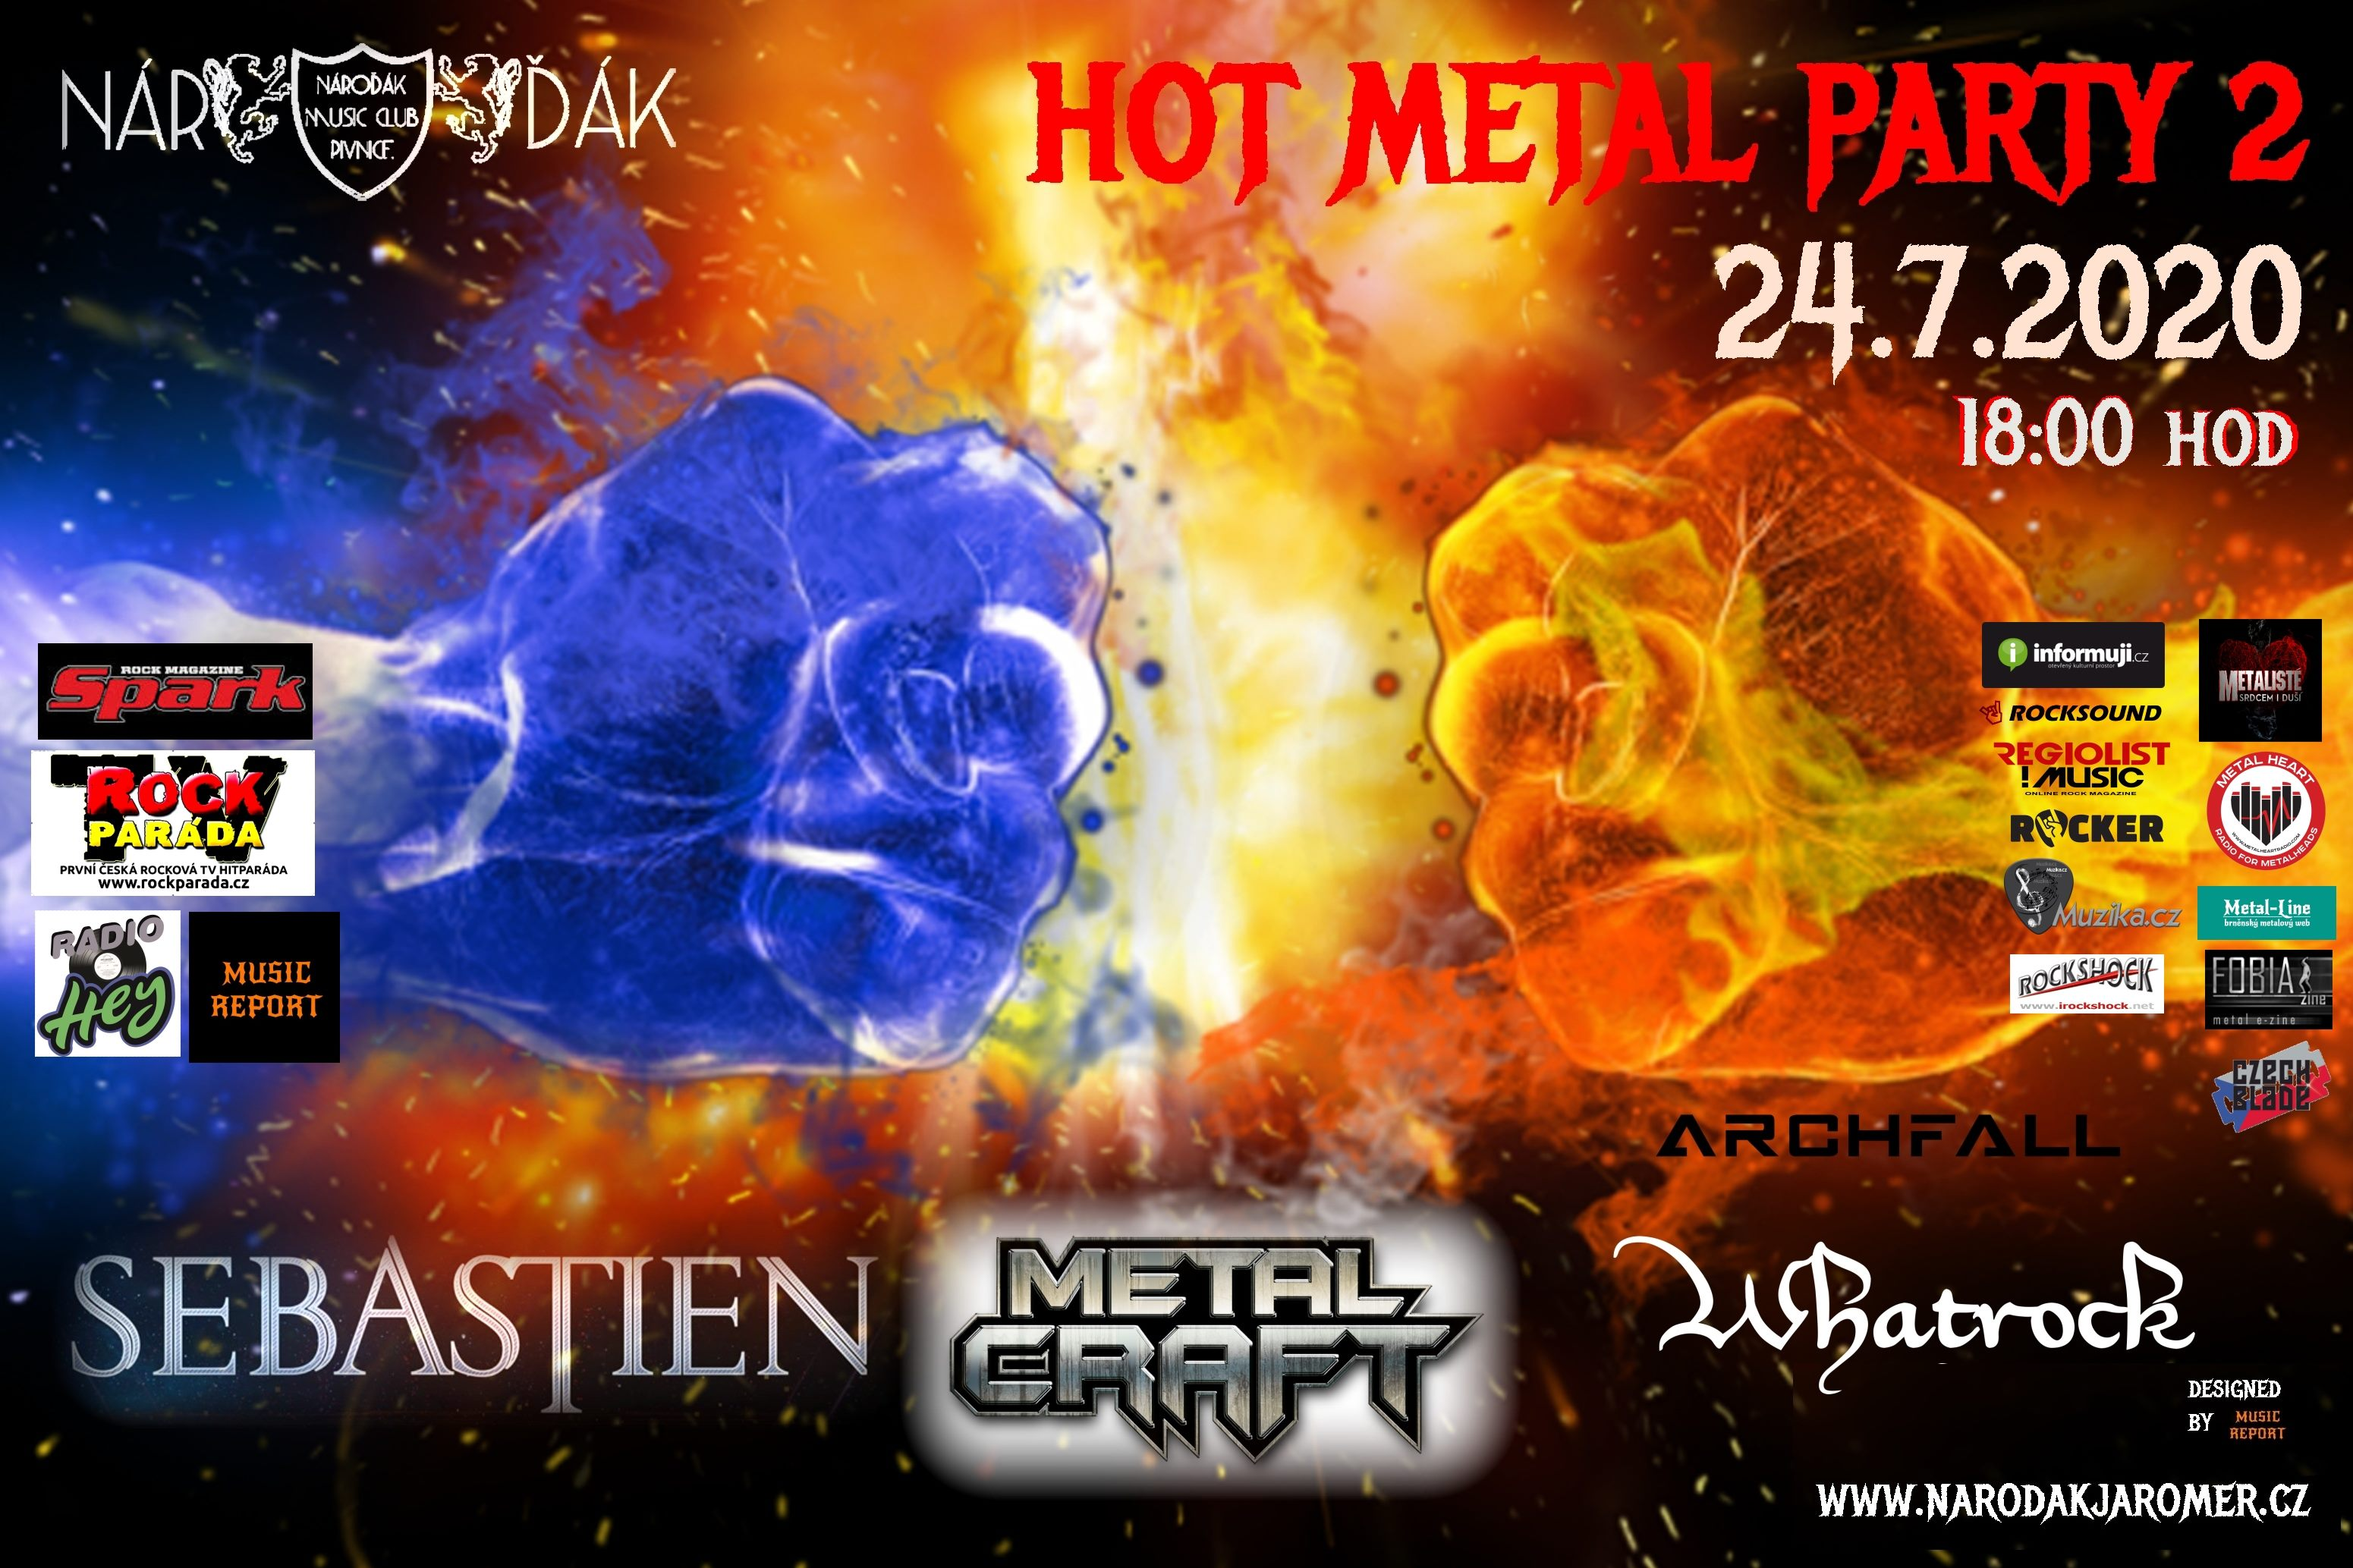 HOT METAL PARTY II.